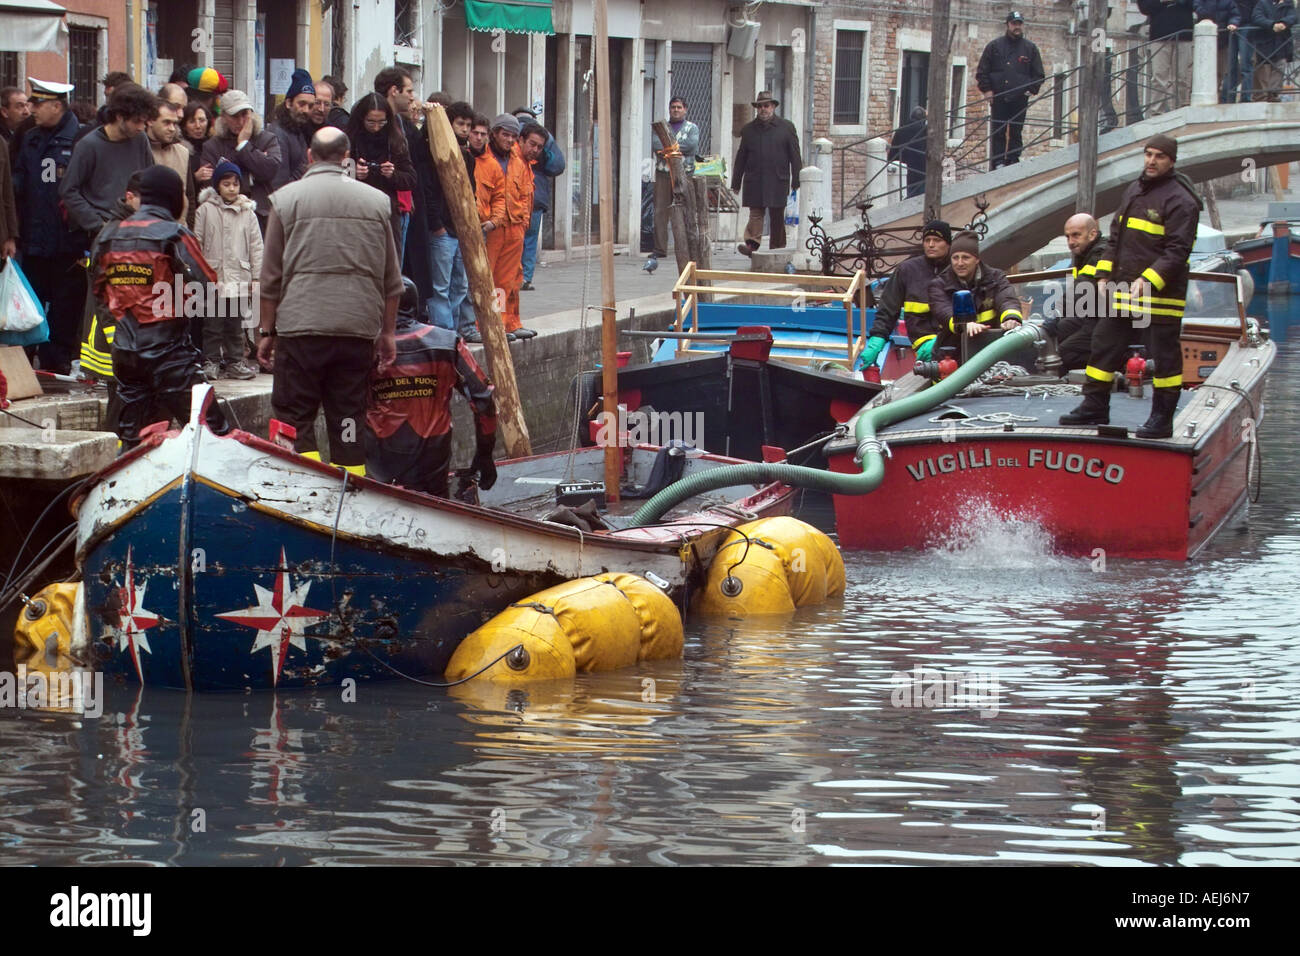 Raising a boat sunk in a Venetian canal - Stock Image